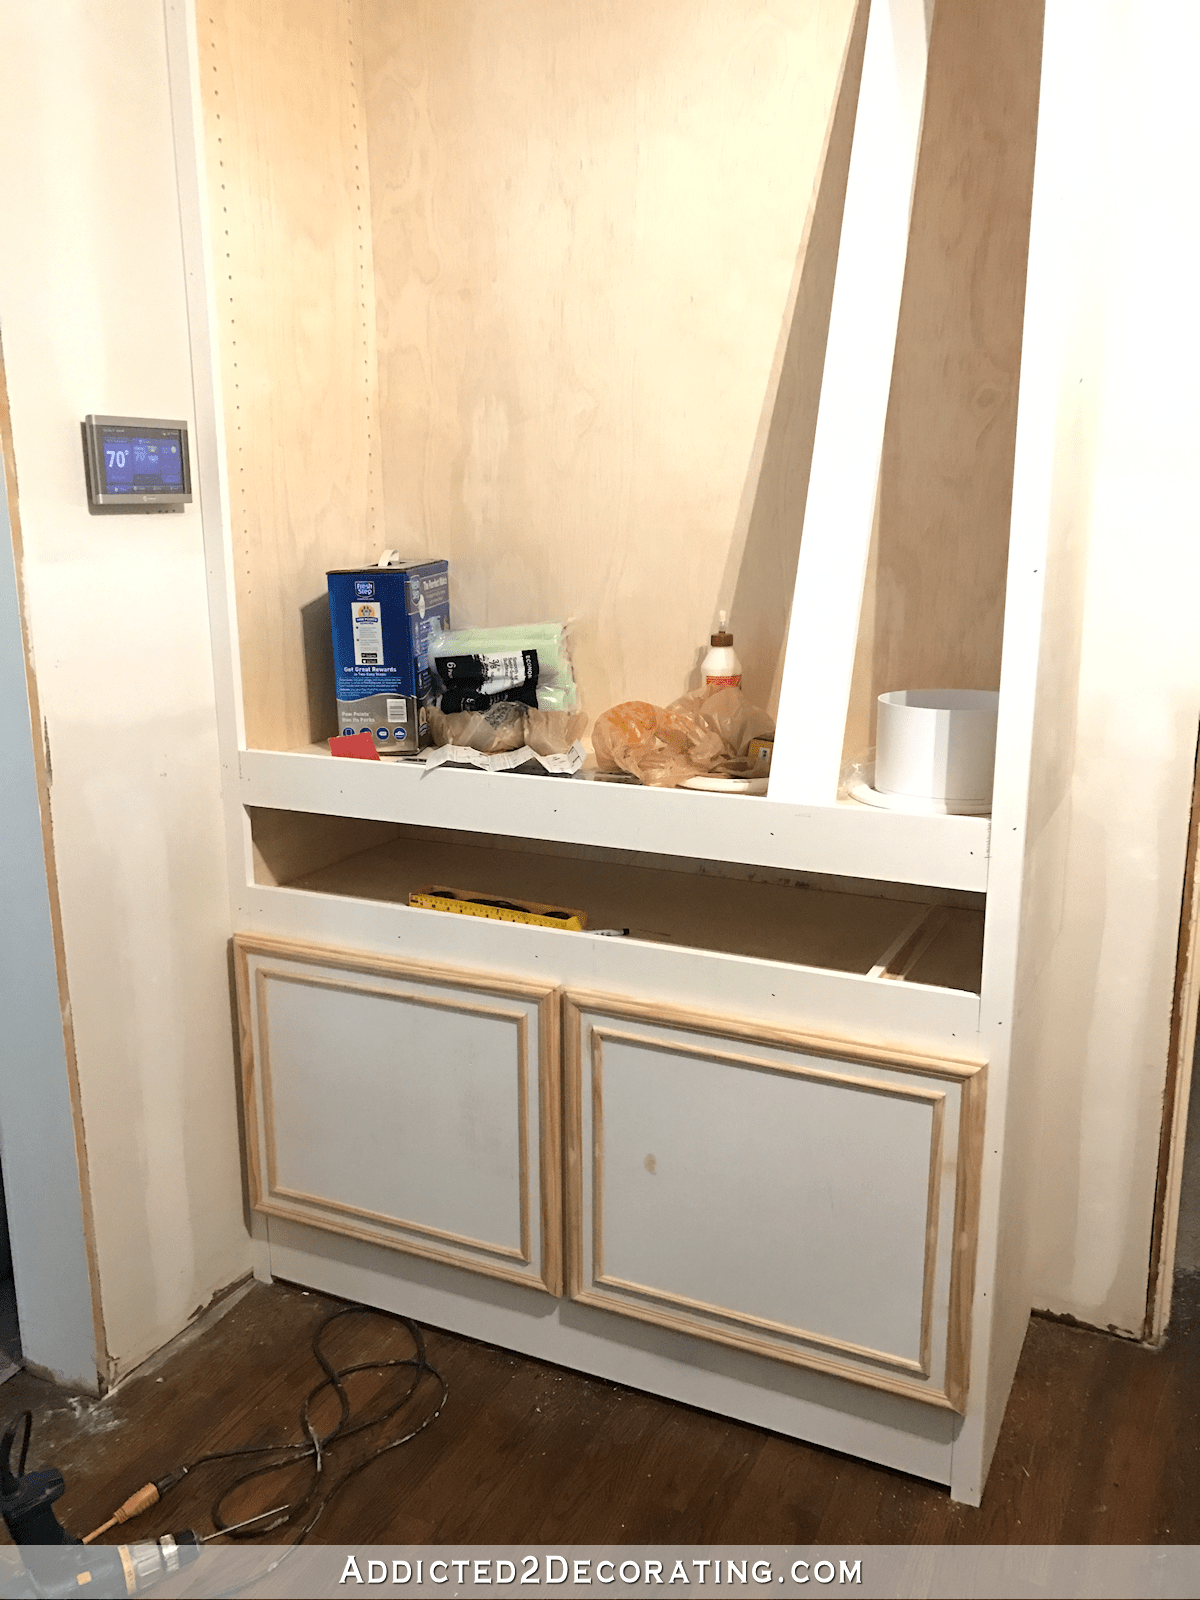 Diy Vanity Doors Simple Diy Cabinet Doors Make Cabinet Doors With Basic Tools